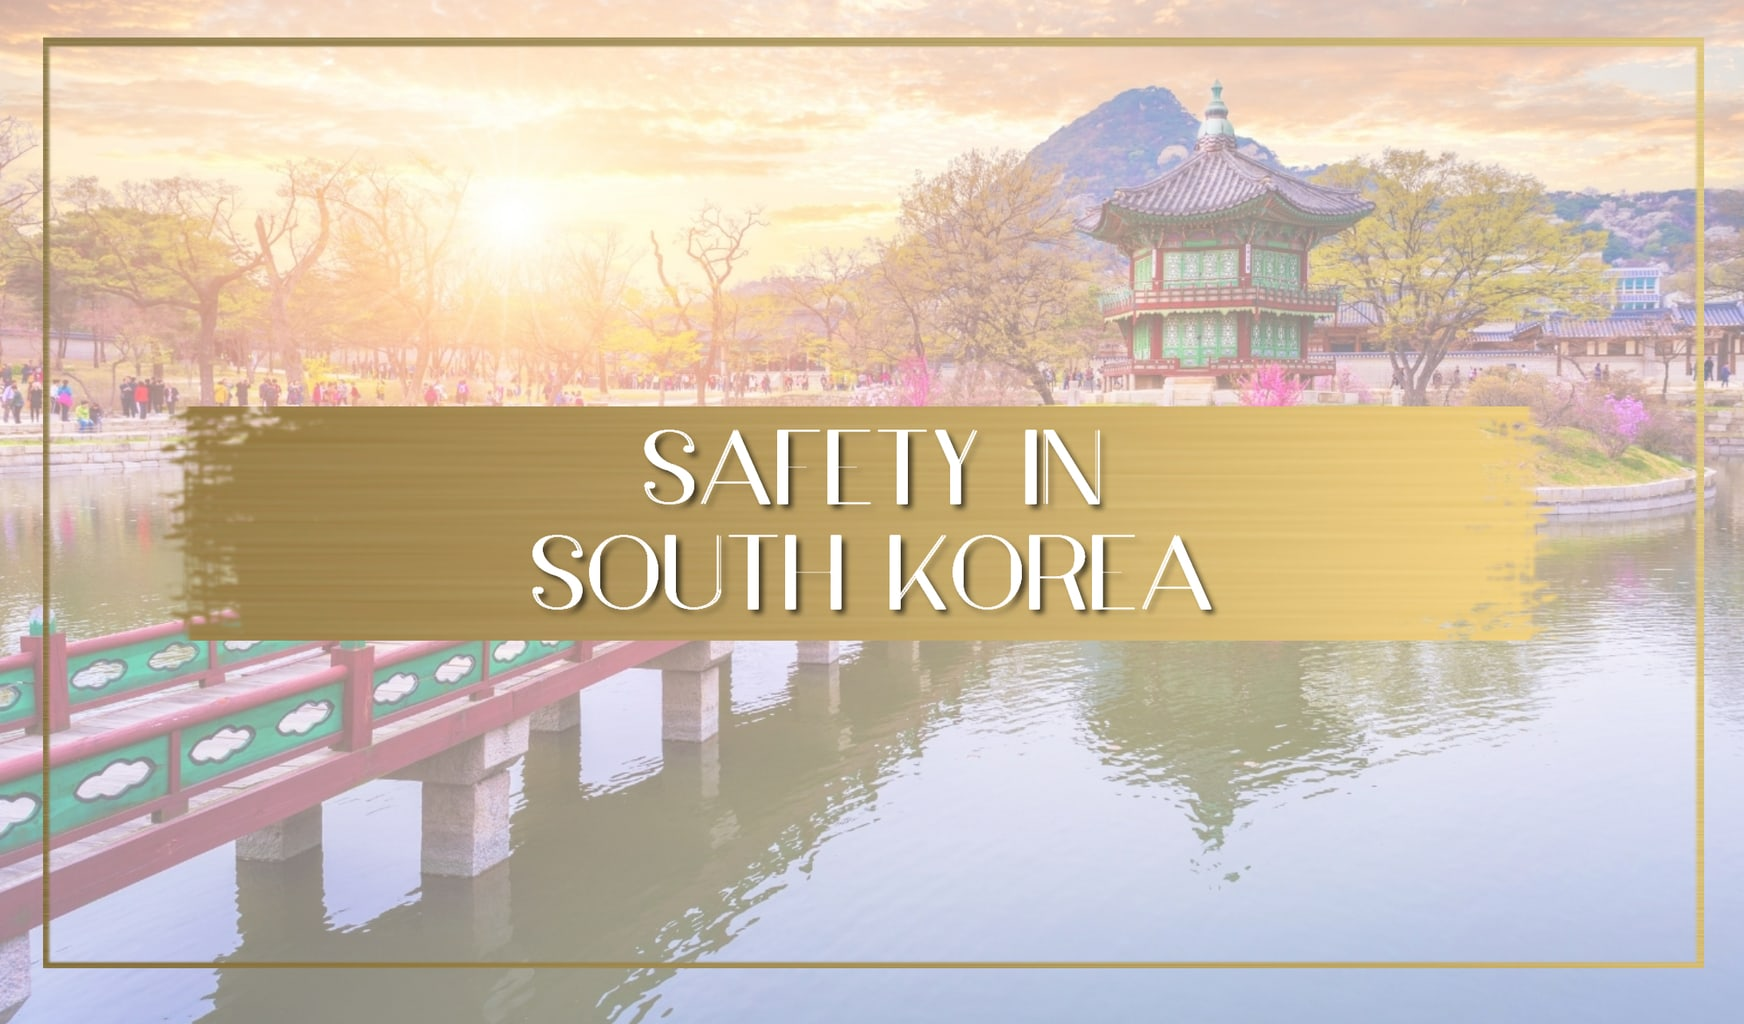 Safety in South Korea main